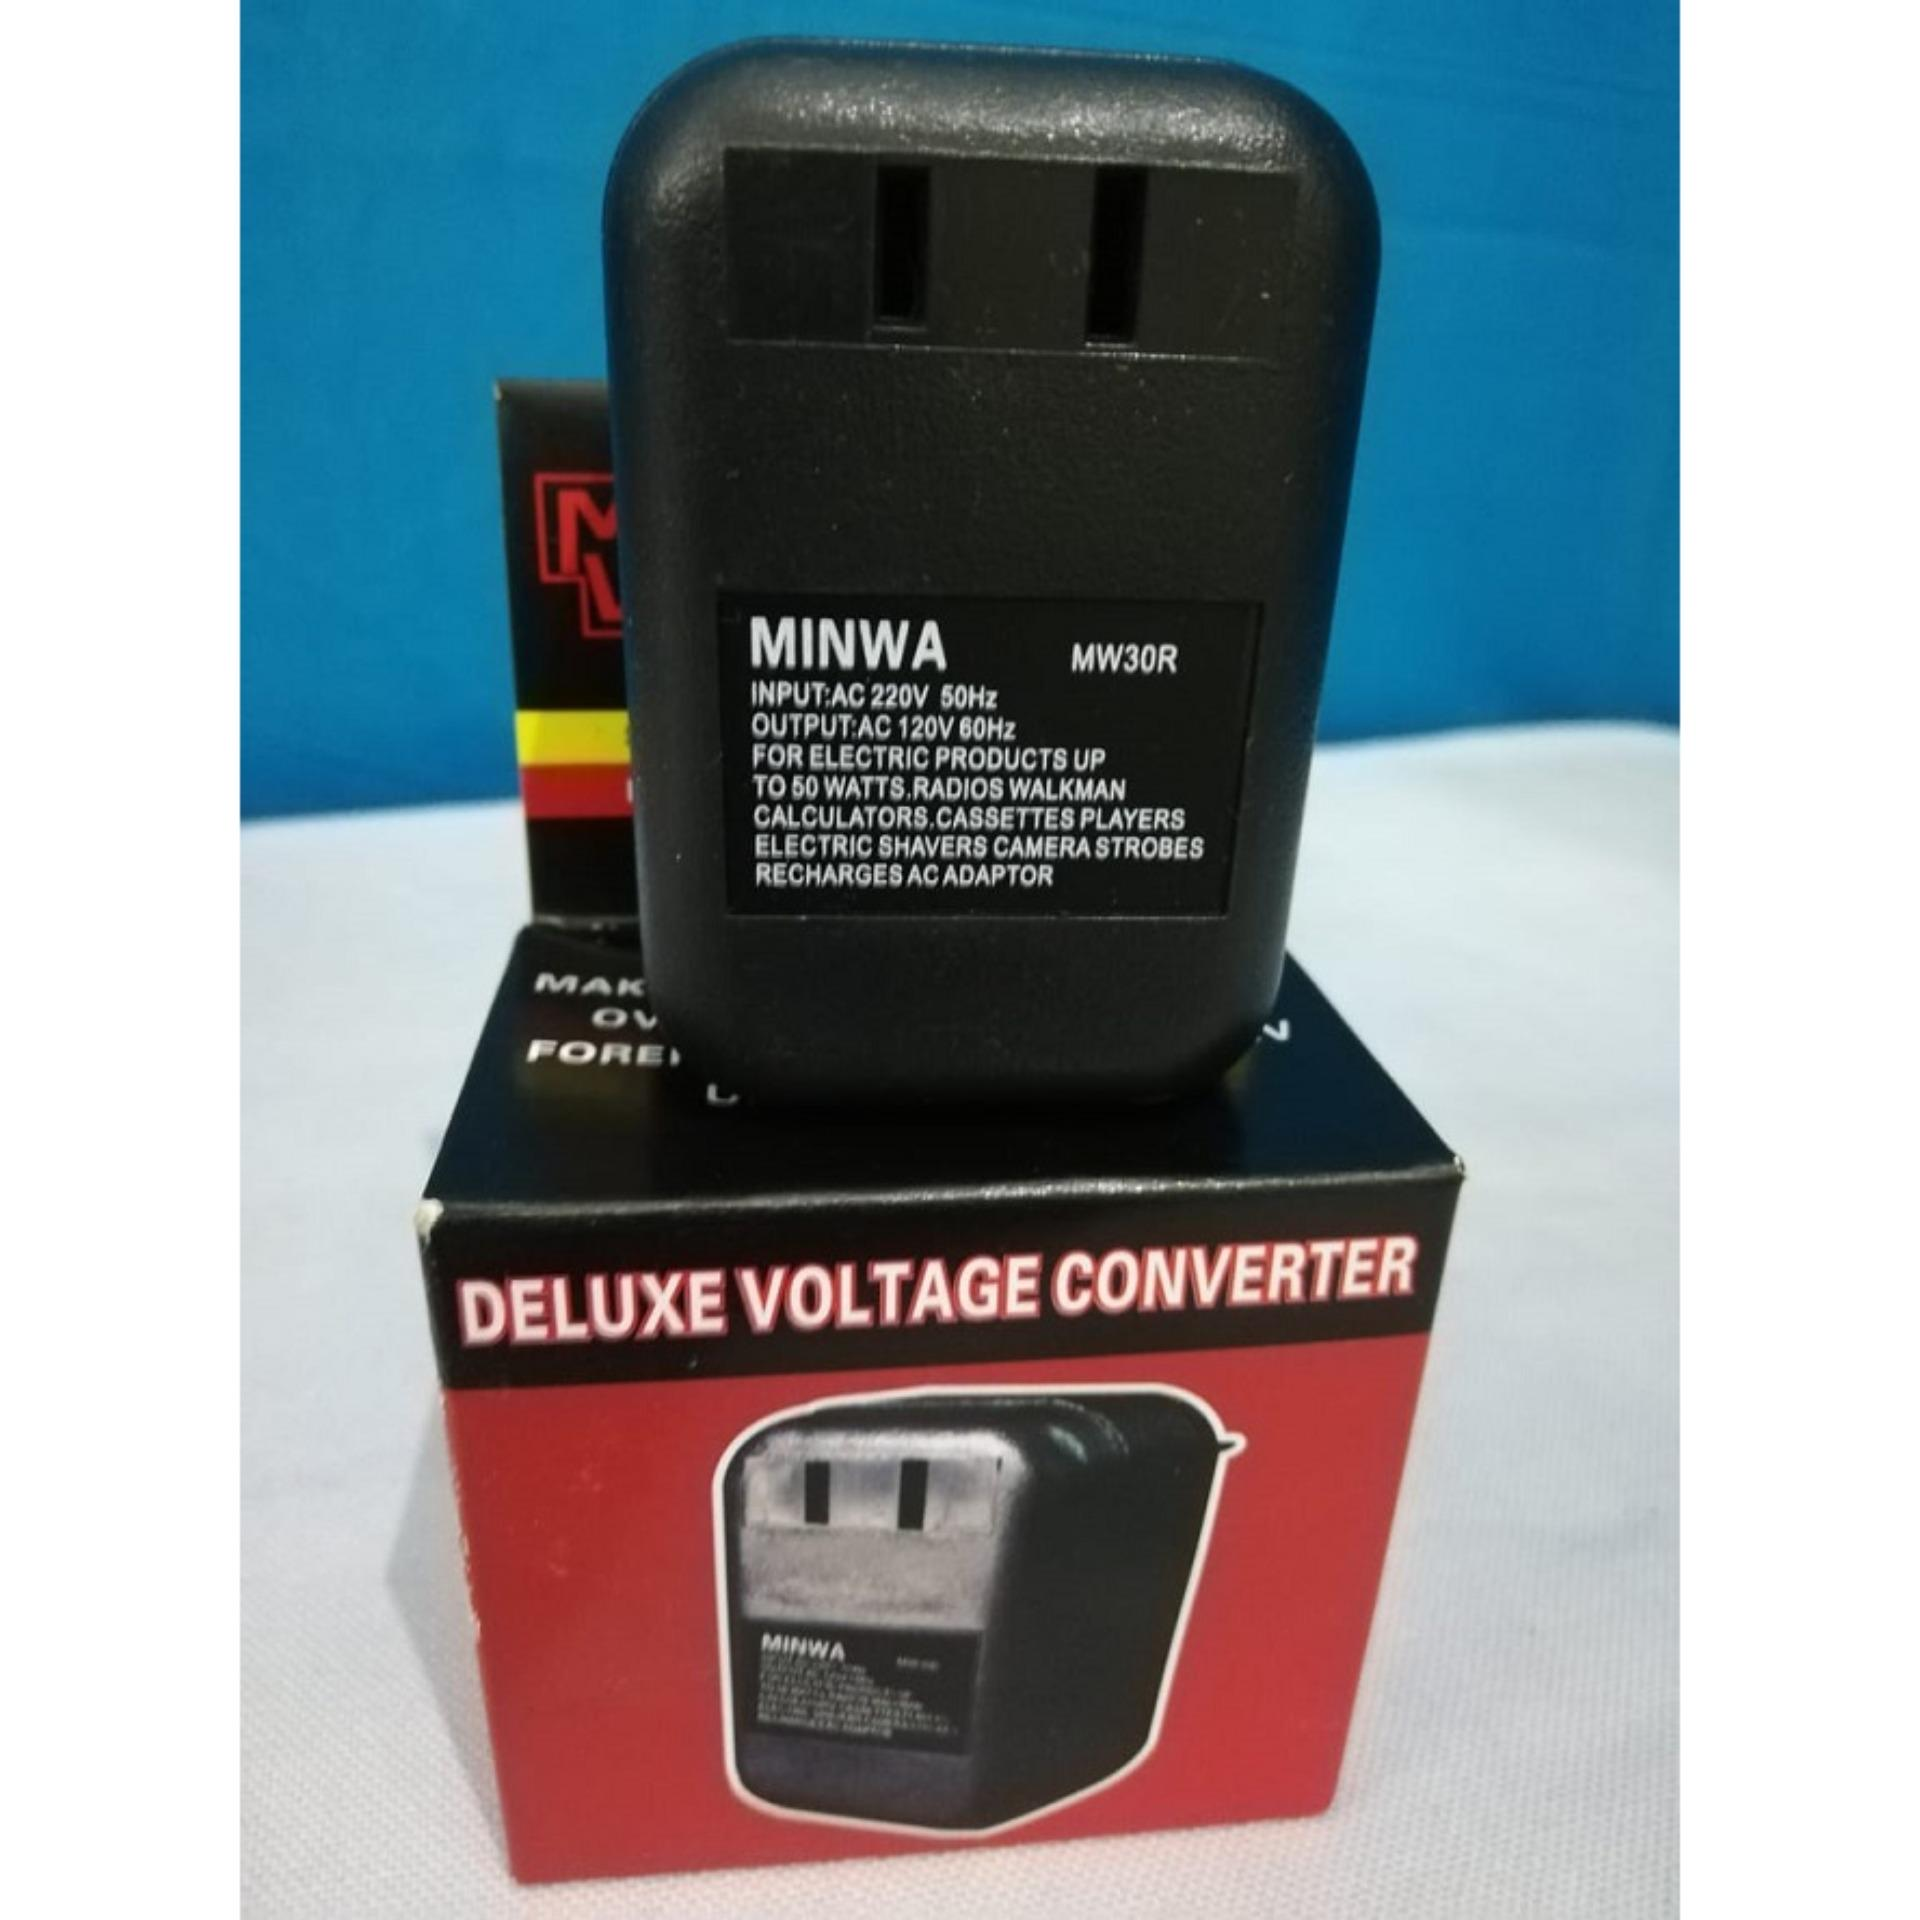 Voltage Converters Online In Pakistan 24 Volt Power Supply 30 Amp Single Output Converter 220v To 110v Watt